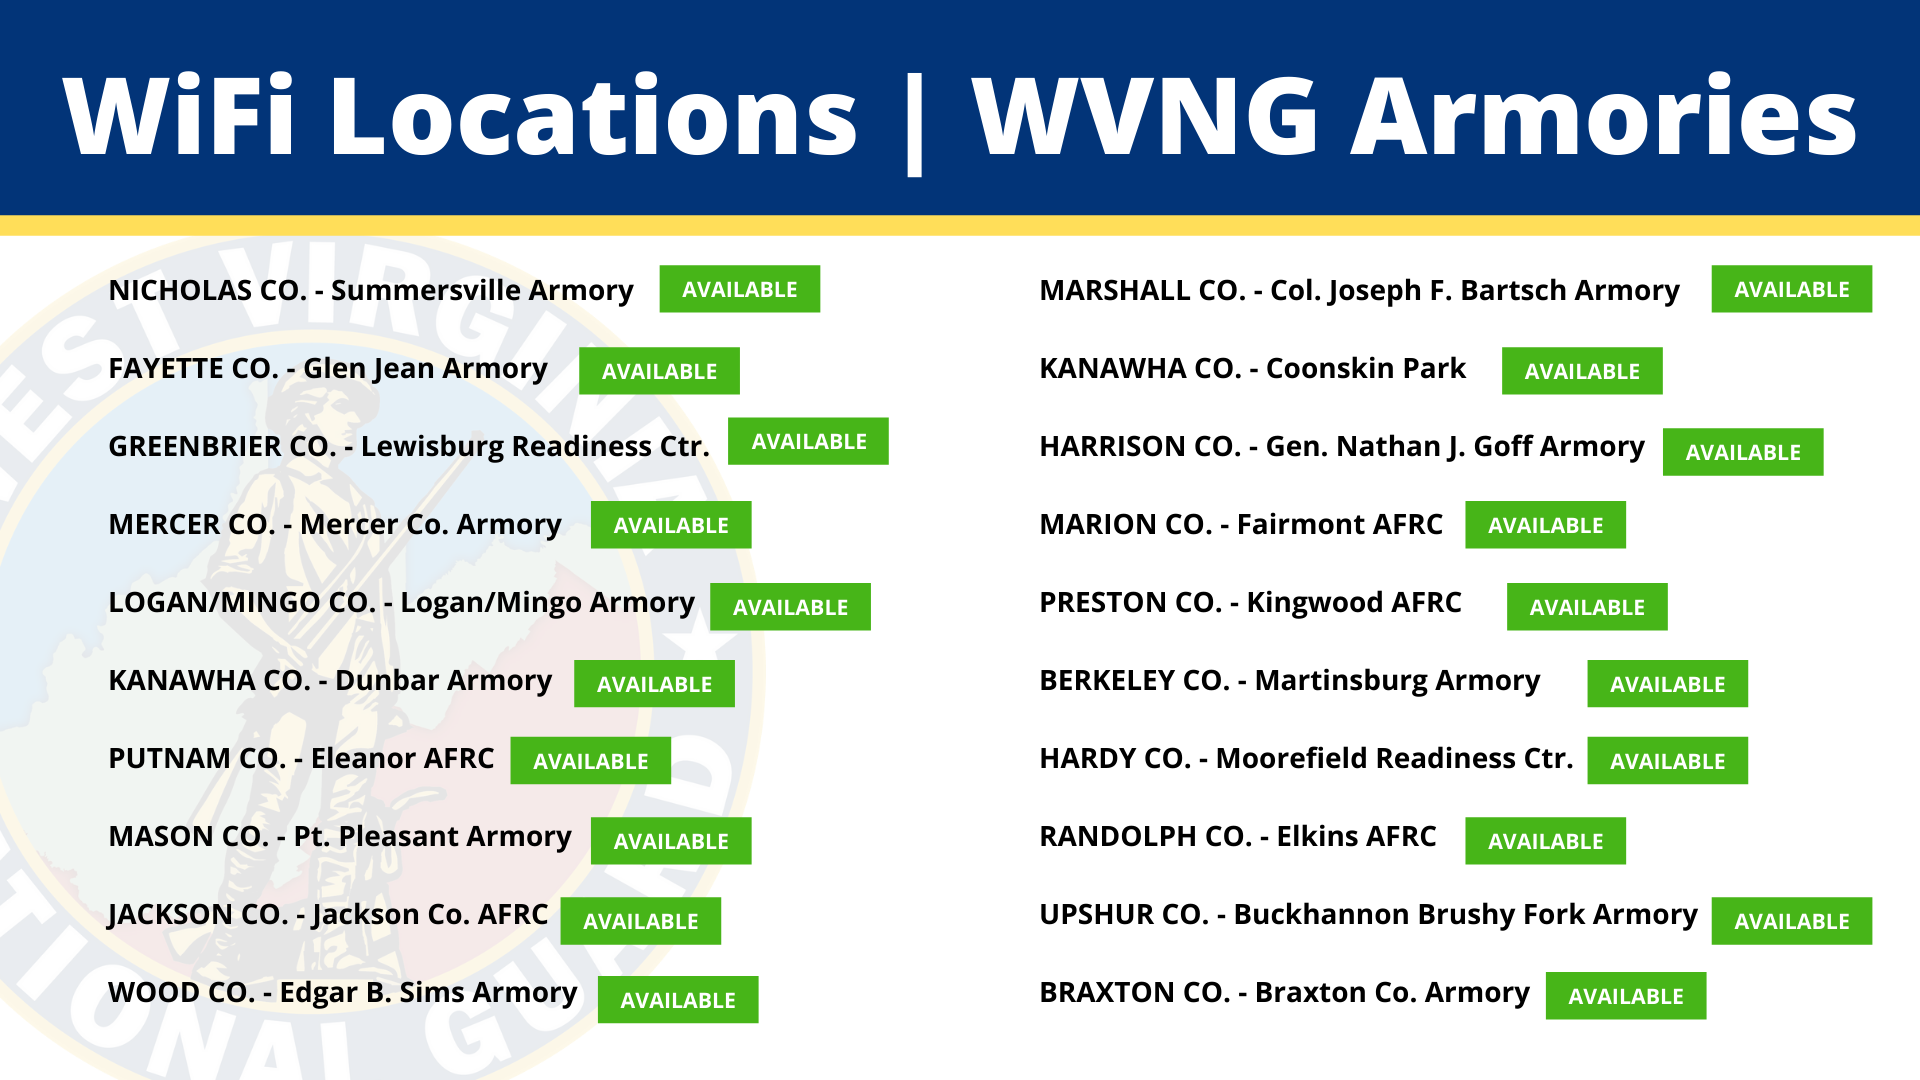 WiFi locations